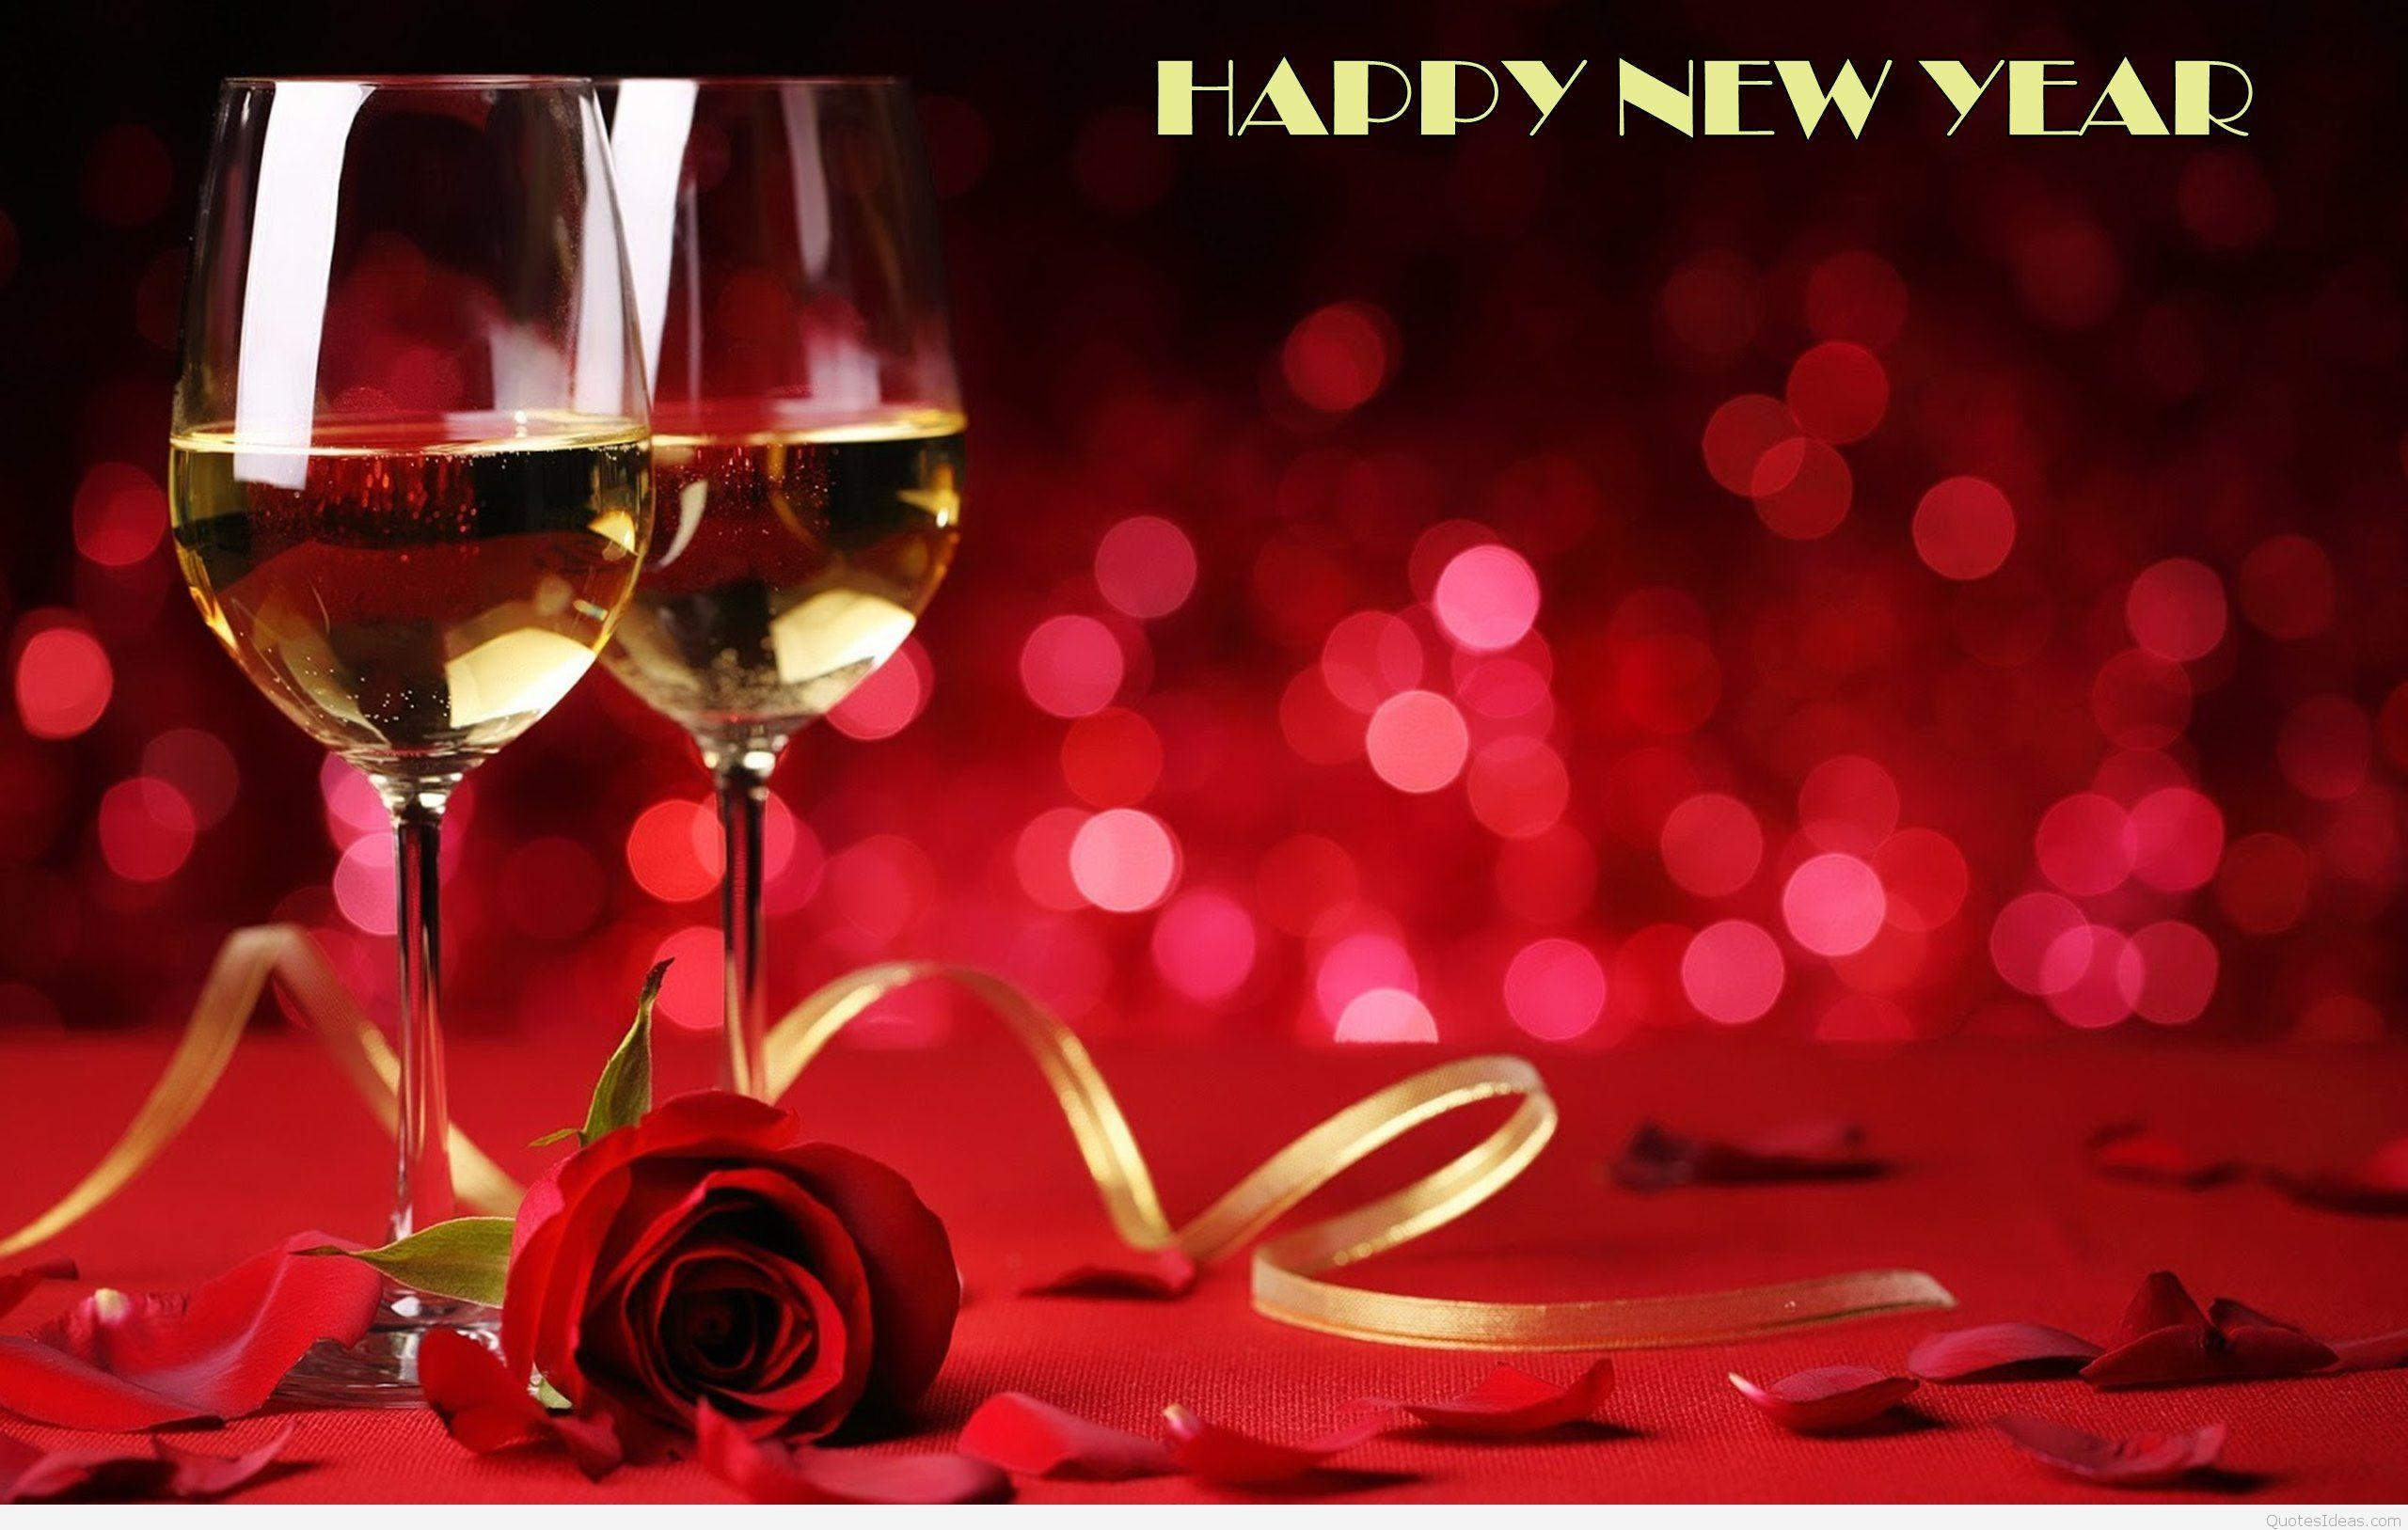 Love Wallpaper For New Year 2016 : New Years Eve 2016 Wallpapers Free - Wallpaper cave